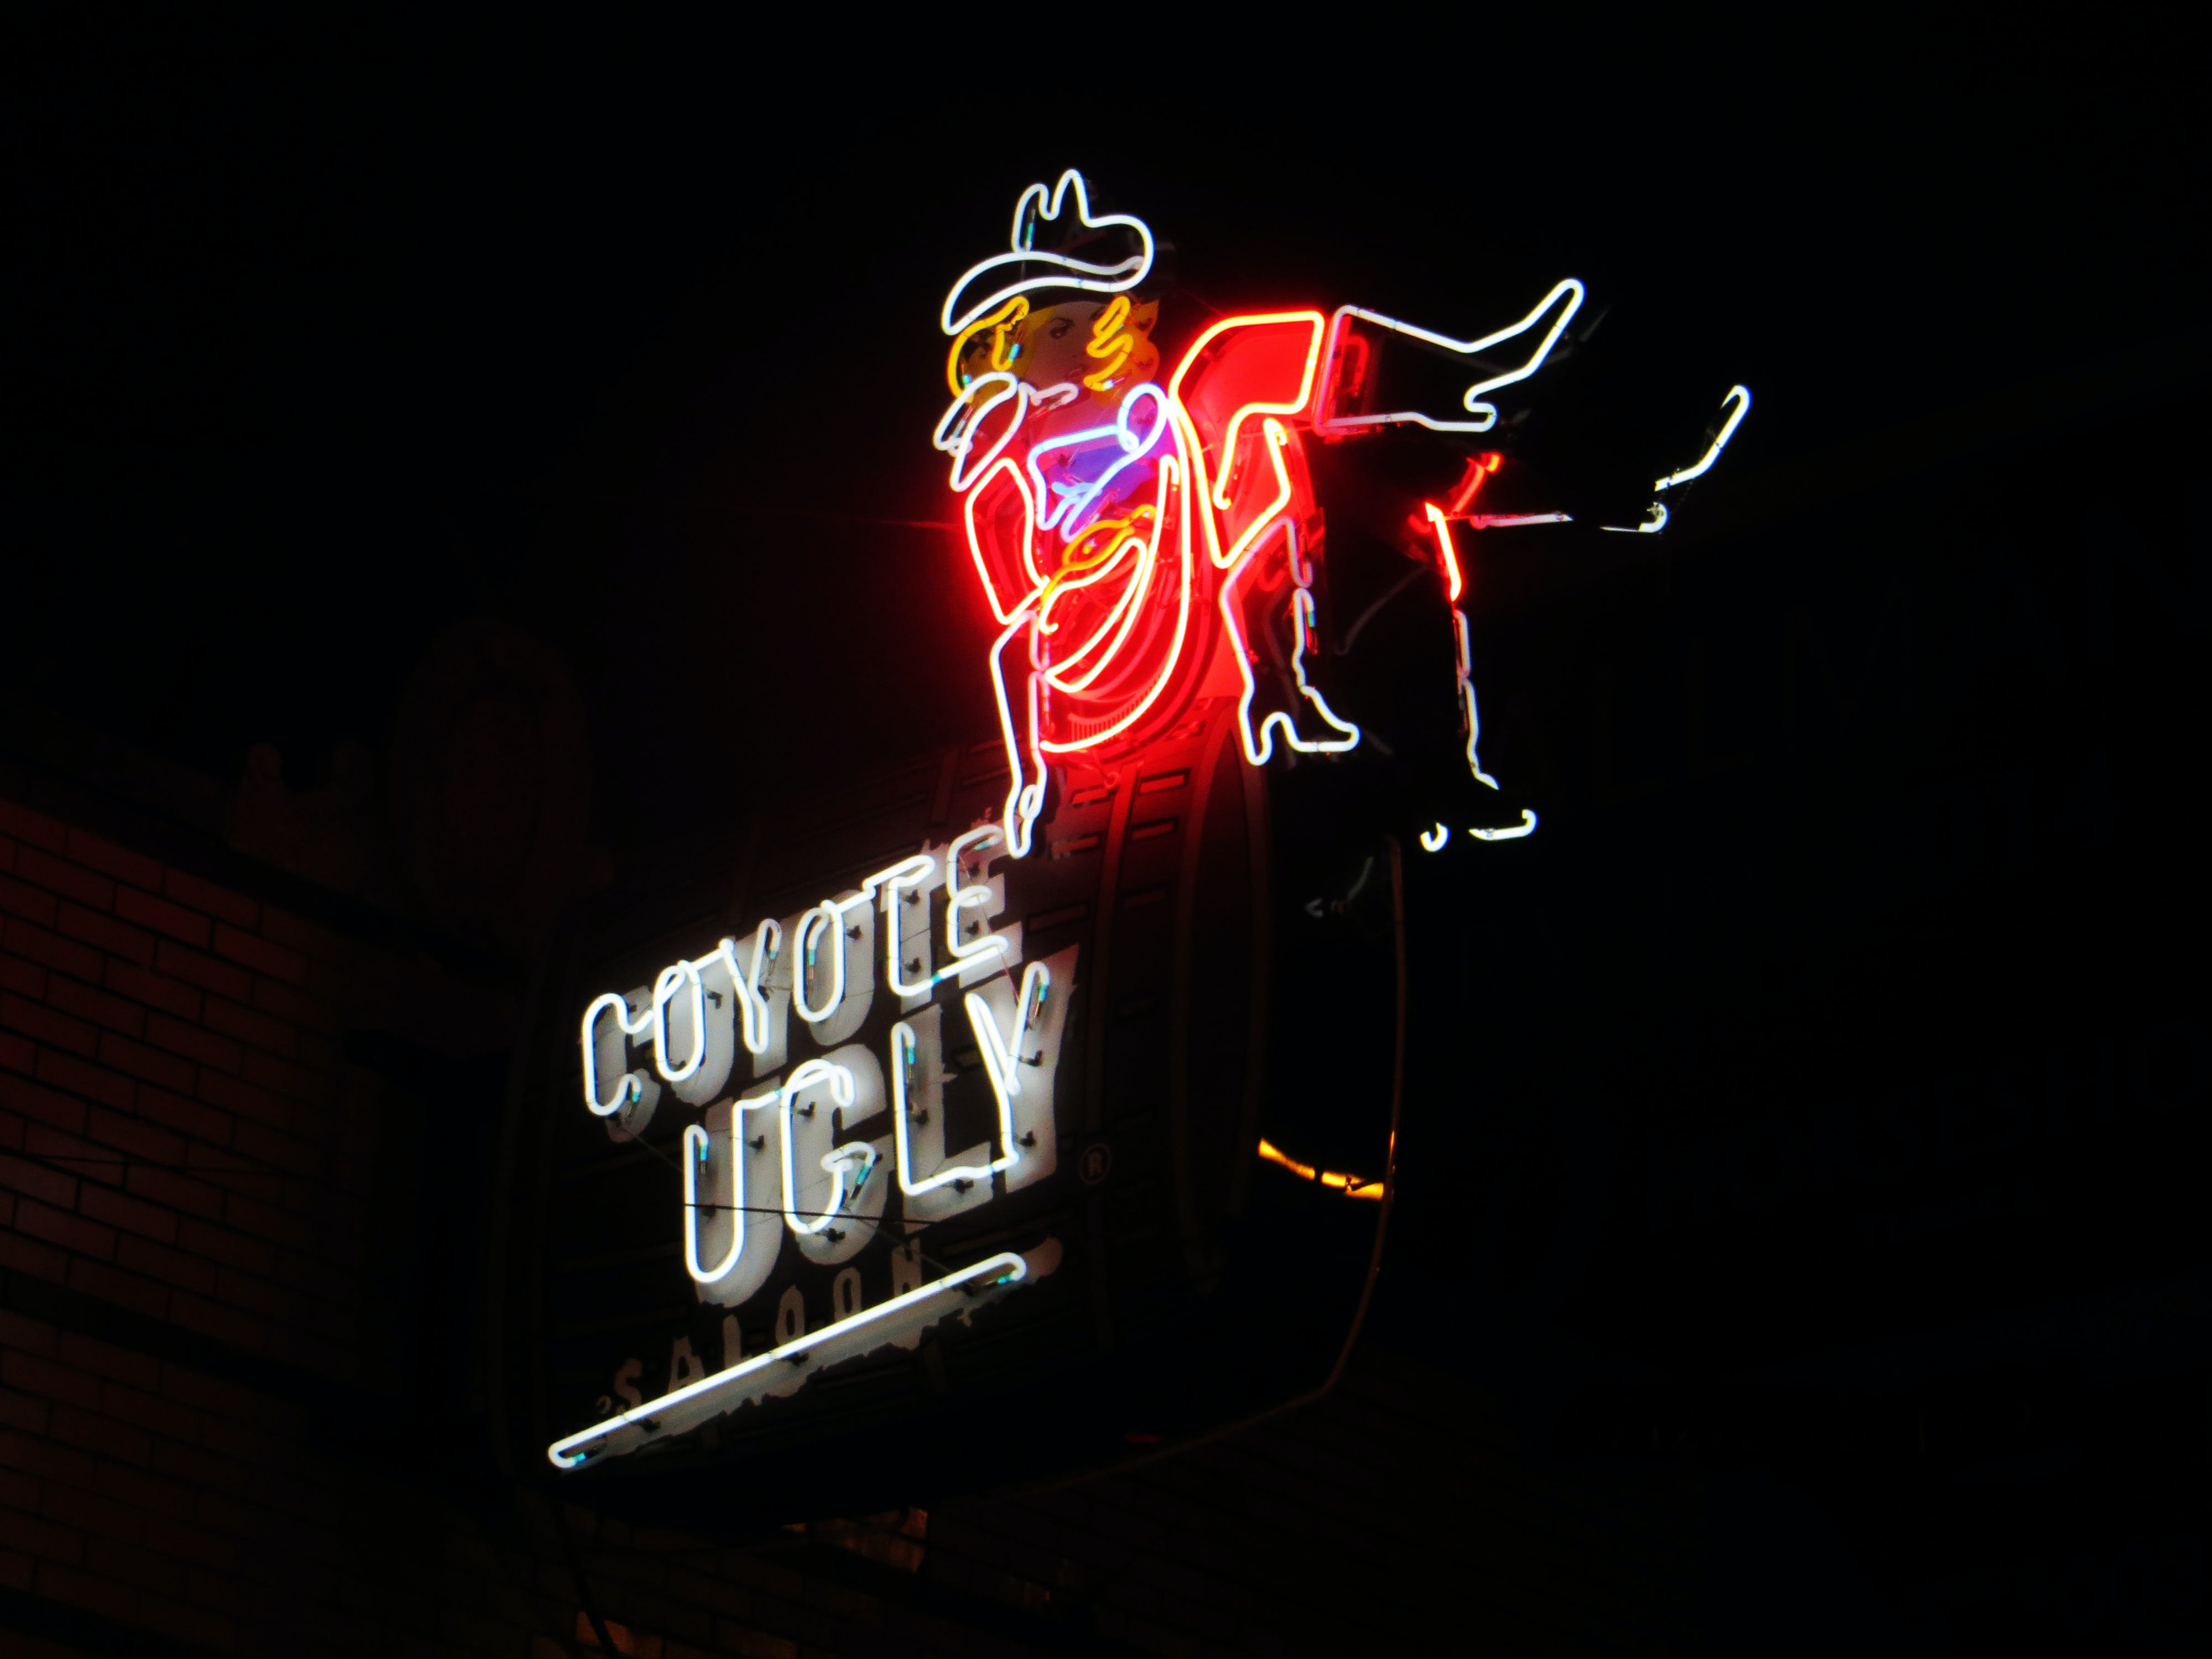 Coyote Ugly Neon Signage